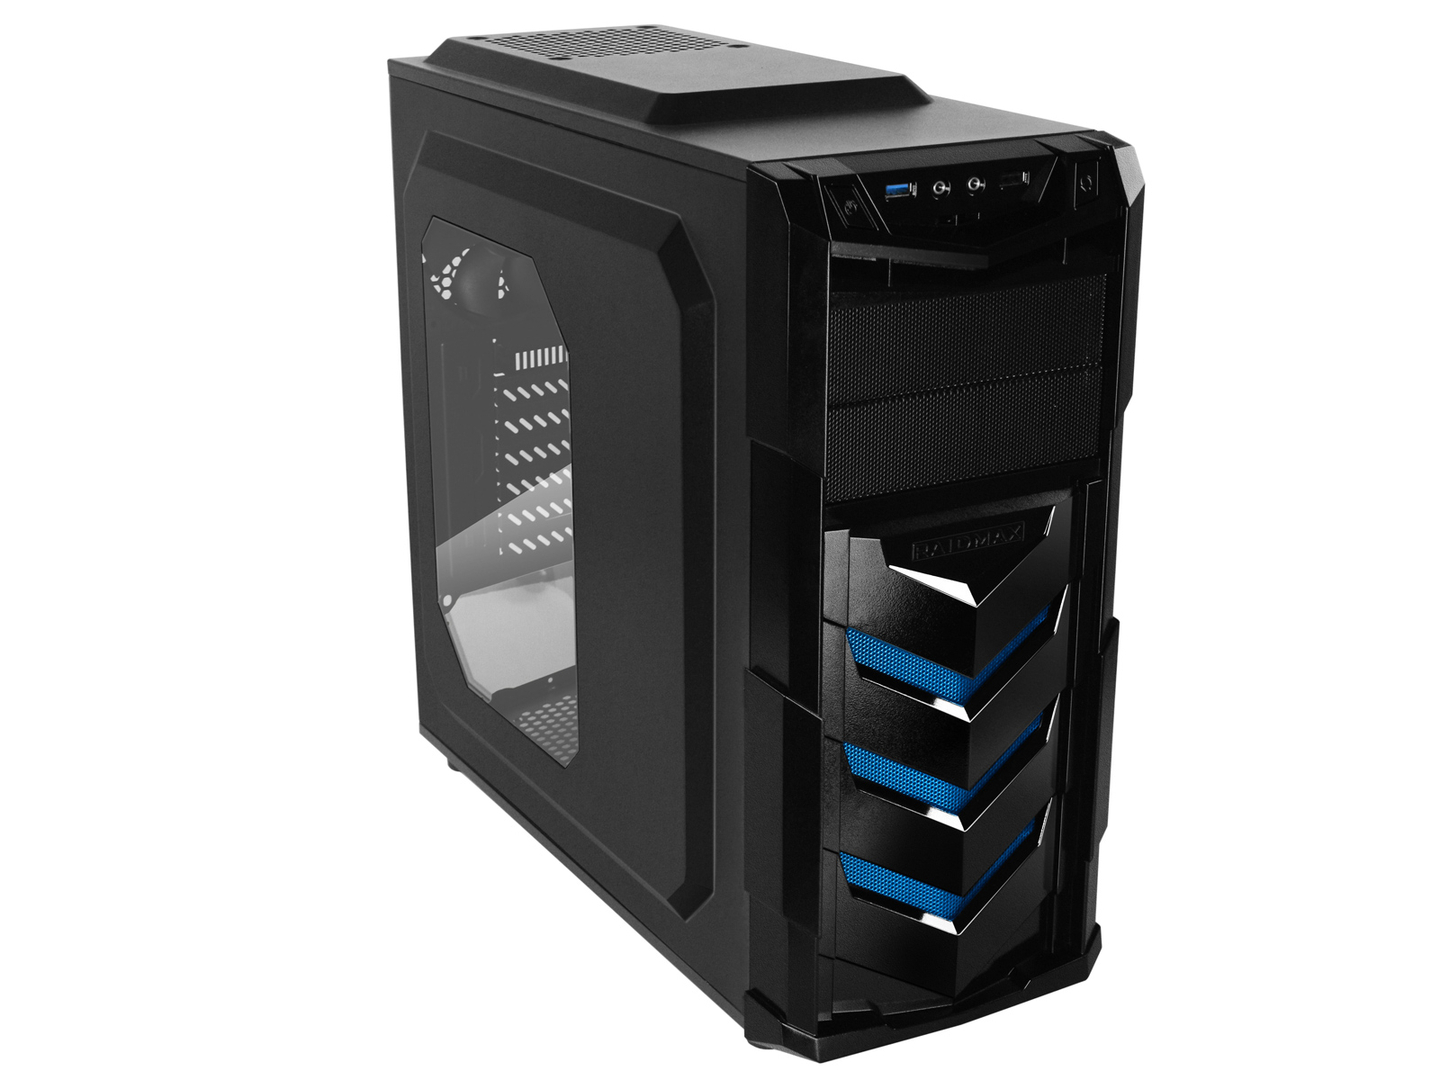 torre gamer cpu pc nuevo amd twelve threads r5 1600 rx 460 4gb gddr5 memoria ram 8gb ddr4 blindada board msi b350 disco duro 2tb 2000gb juegos gamer chasis case atx